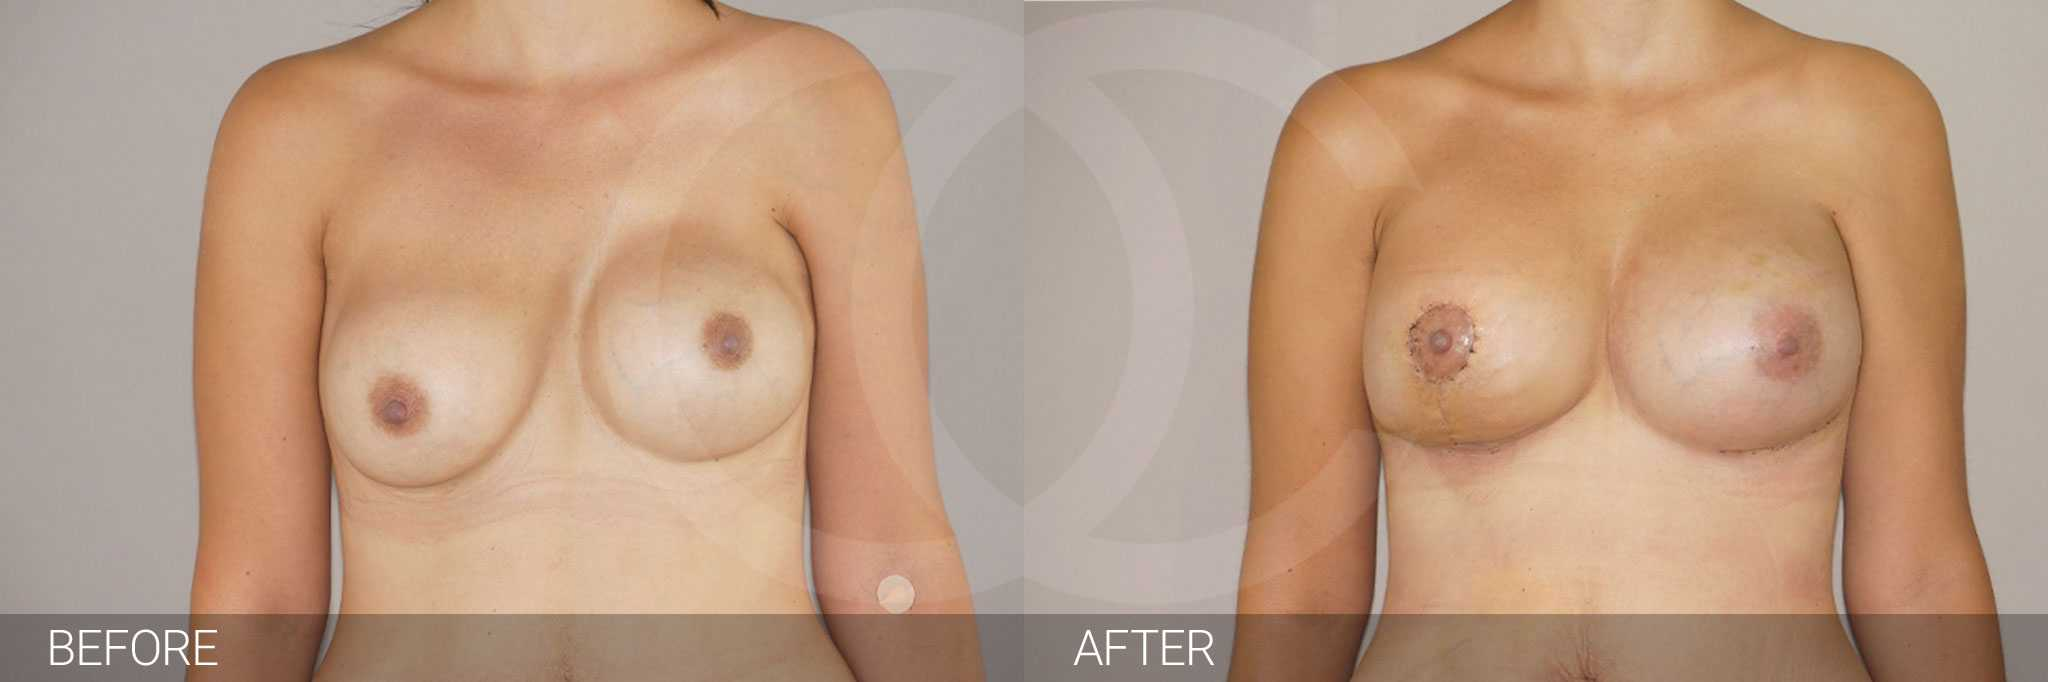 Breast Reconstruction Breast asymmetry ante/post-op I